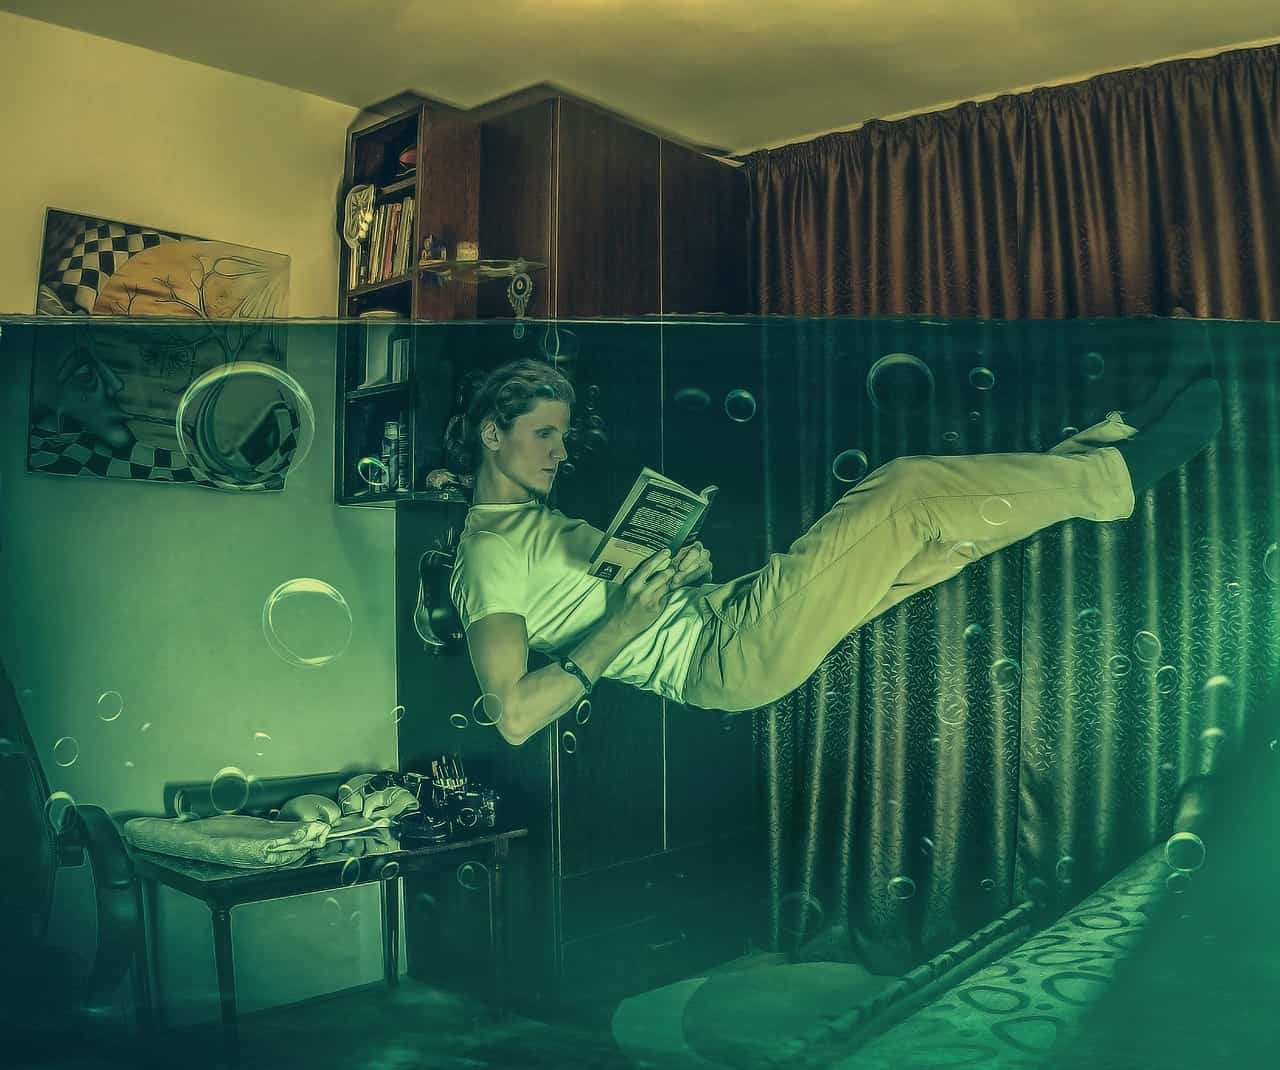 man floating in water in a room